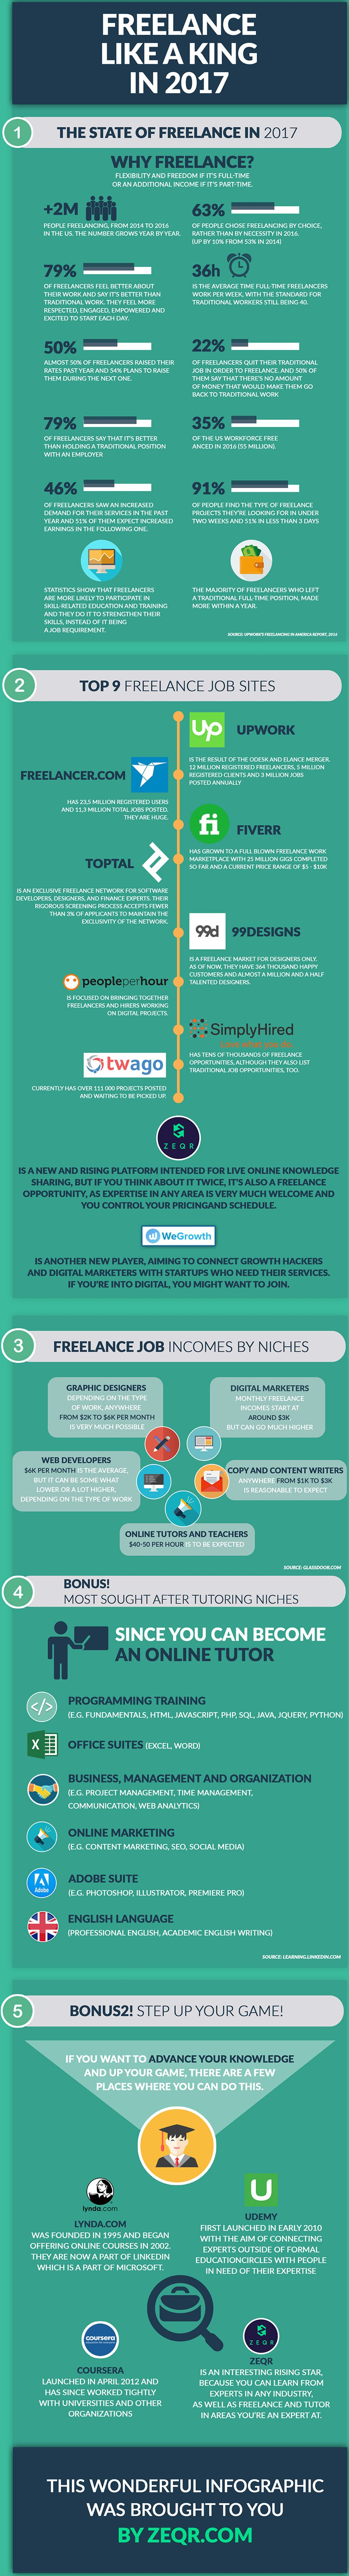 how to Freelance like a king's infographic